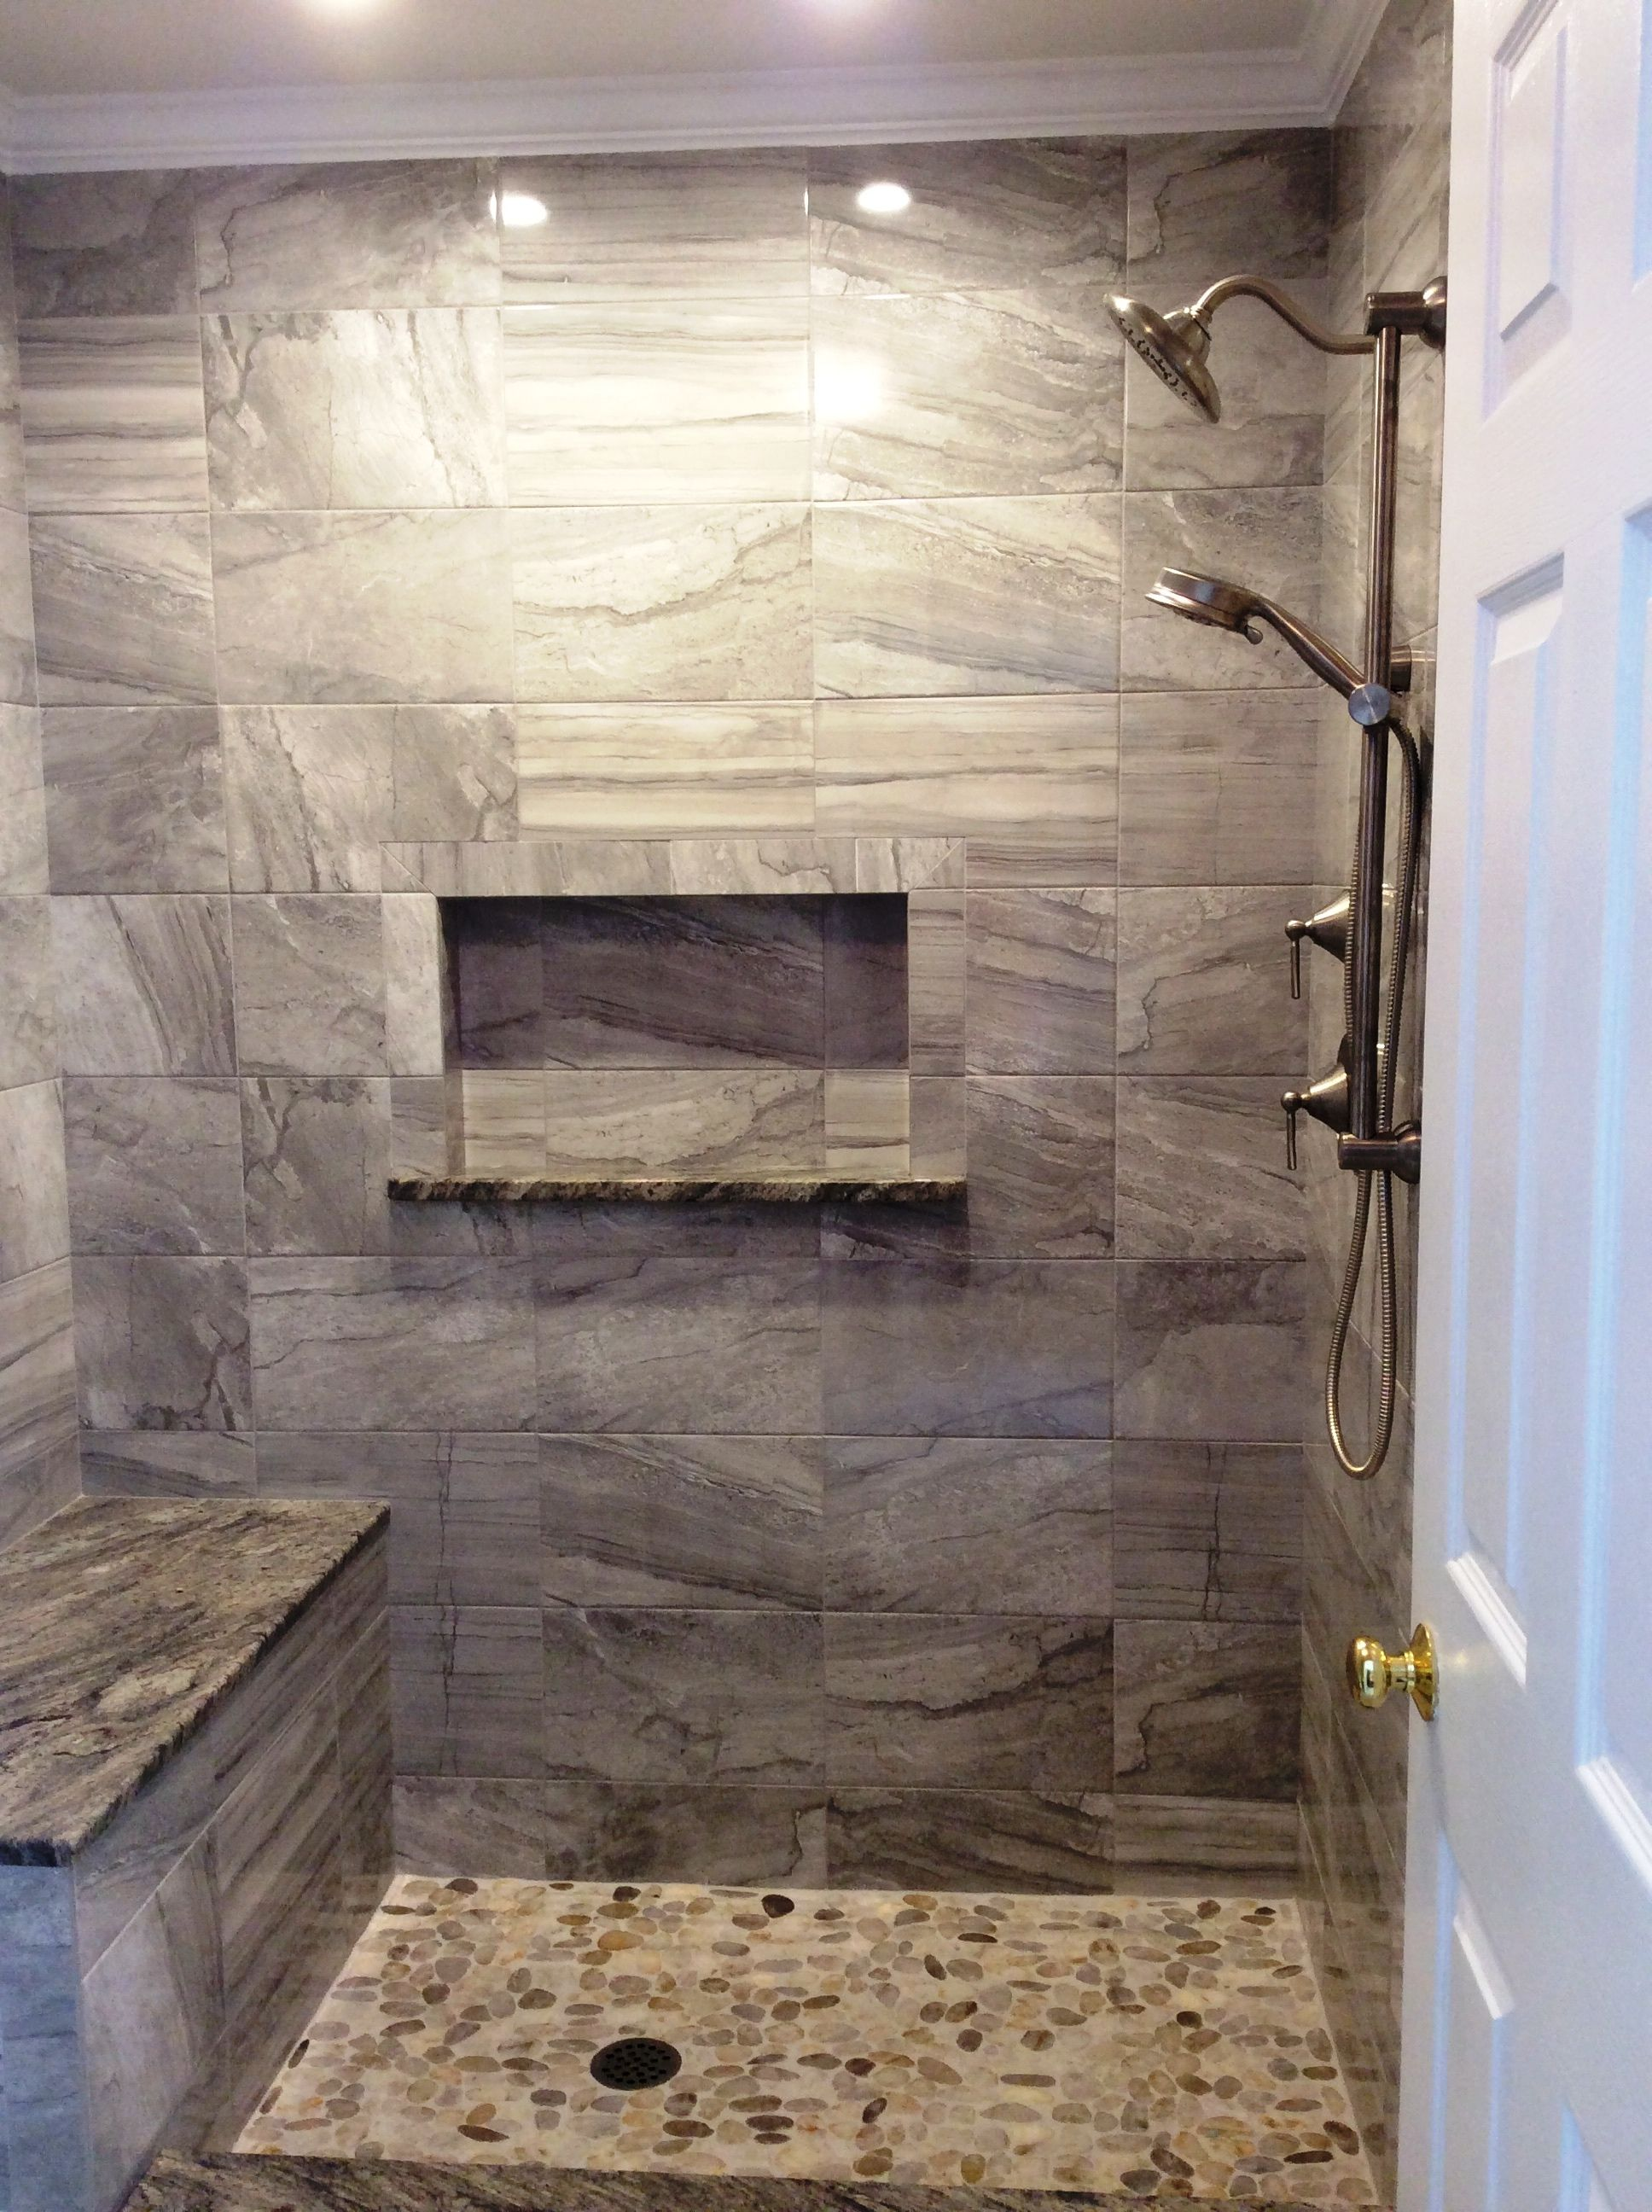 Rock tiles for bathroom - North Hills Flooring Cermaic Tile 10x16 Terra Ege Grey On Shower Walls And Niche